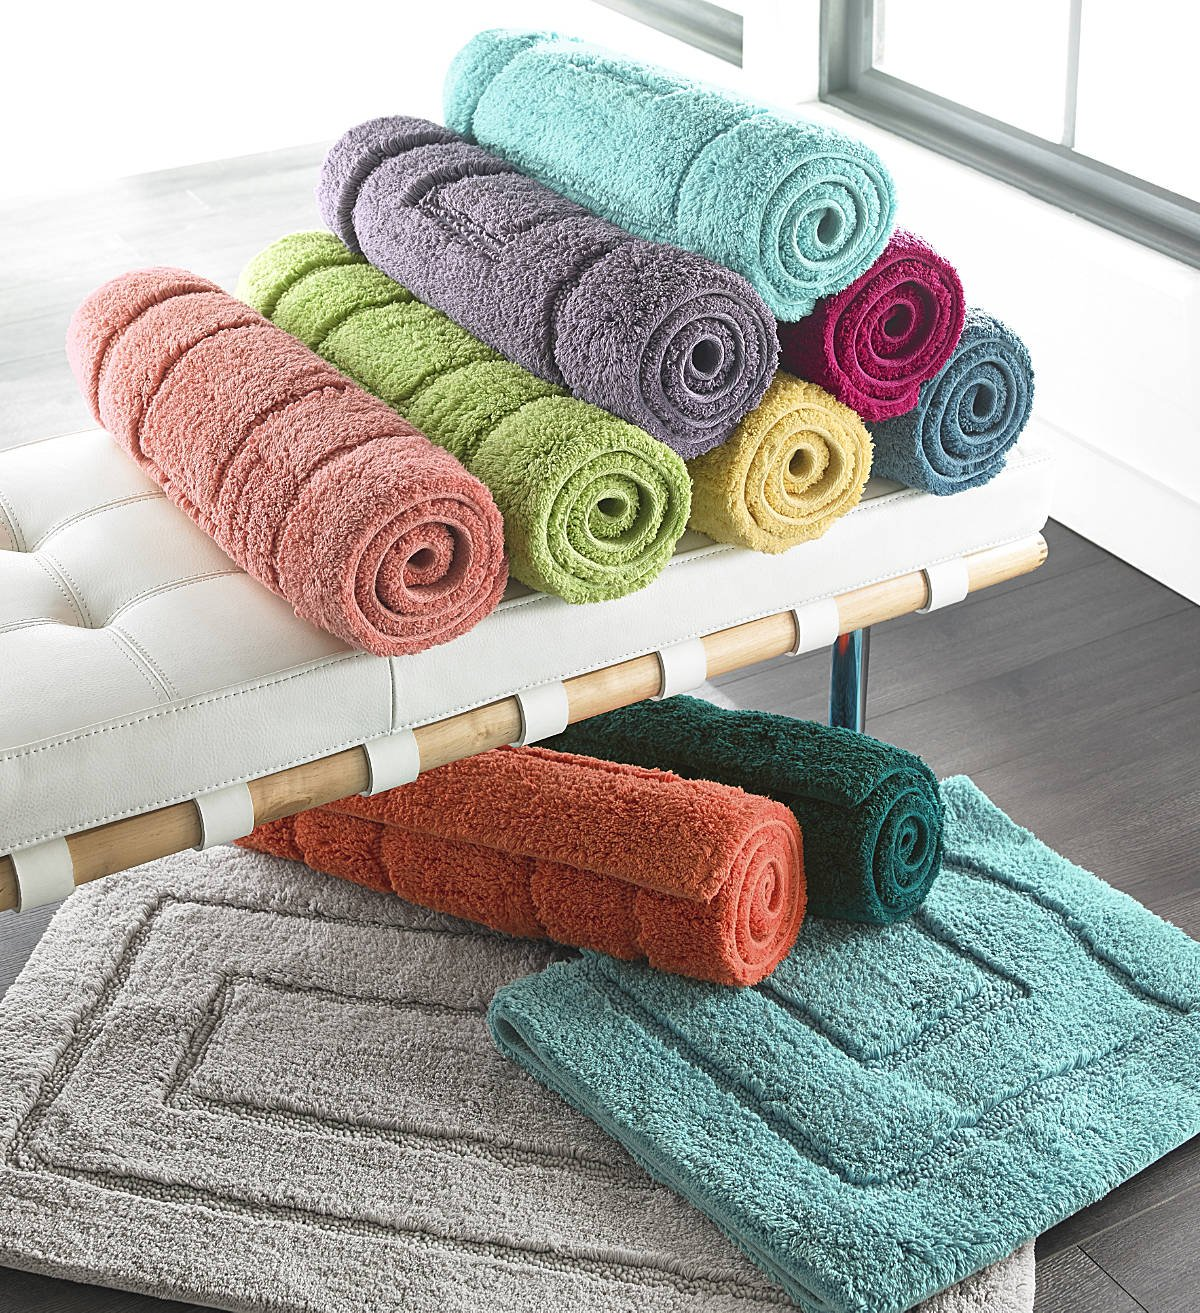 Luxor Linens Spring Bliss 100% Egyptian Cotton Bath Rugs - Blood Orange - Large (24'' x 40'')